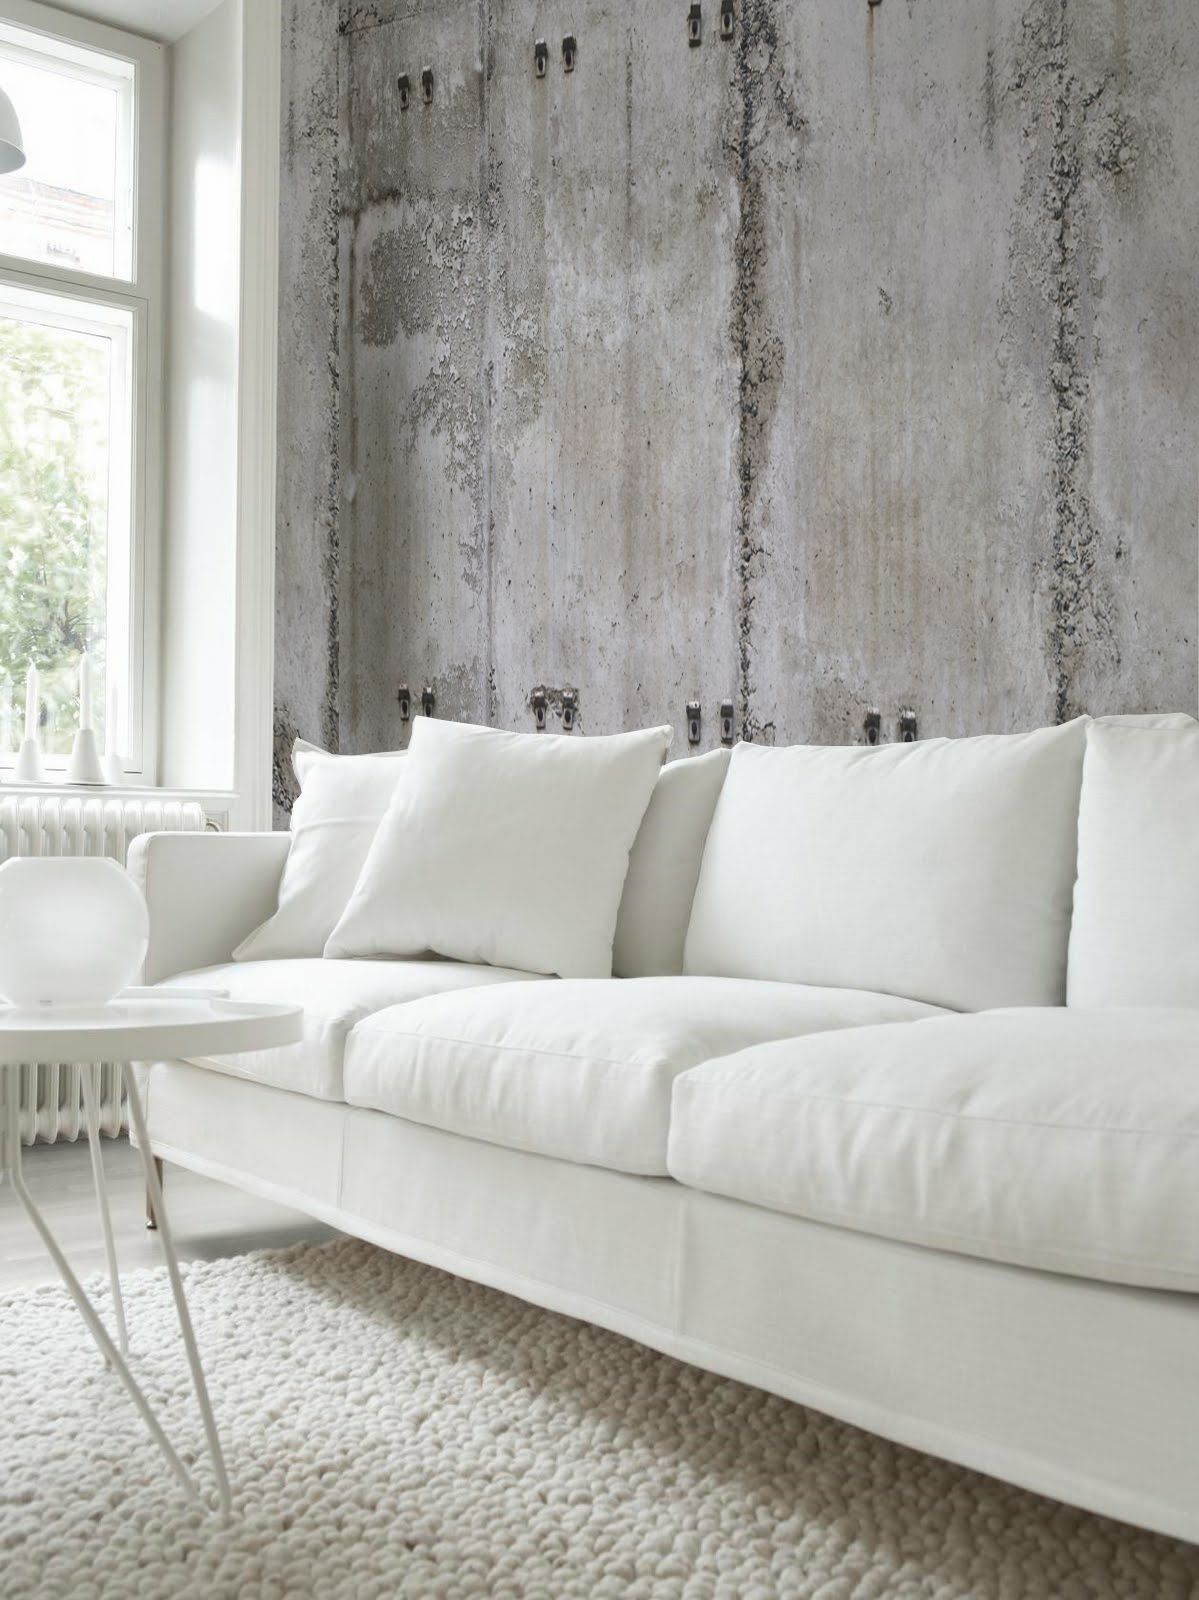 White Room Perfectly Complimented By The Rsw Concrete Wallpaper Urban Rooms Concrete Wall Modern Apartment Design